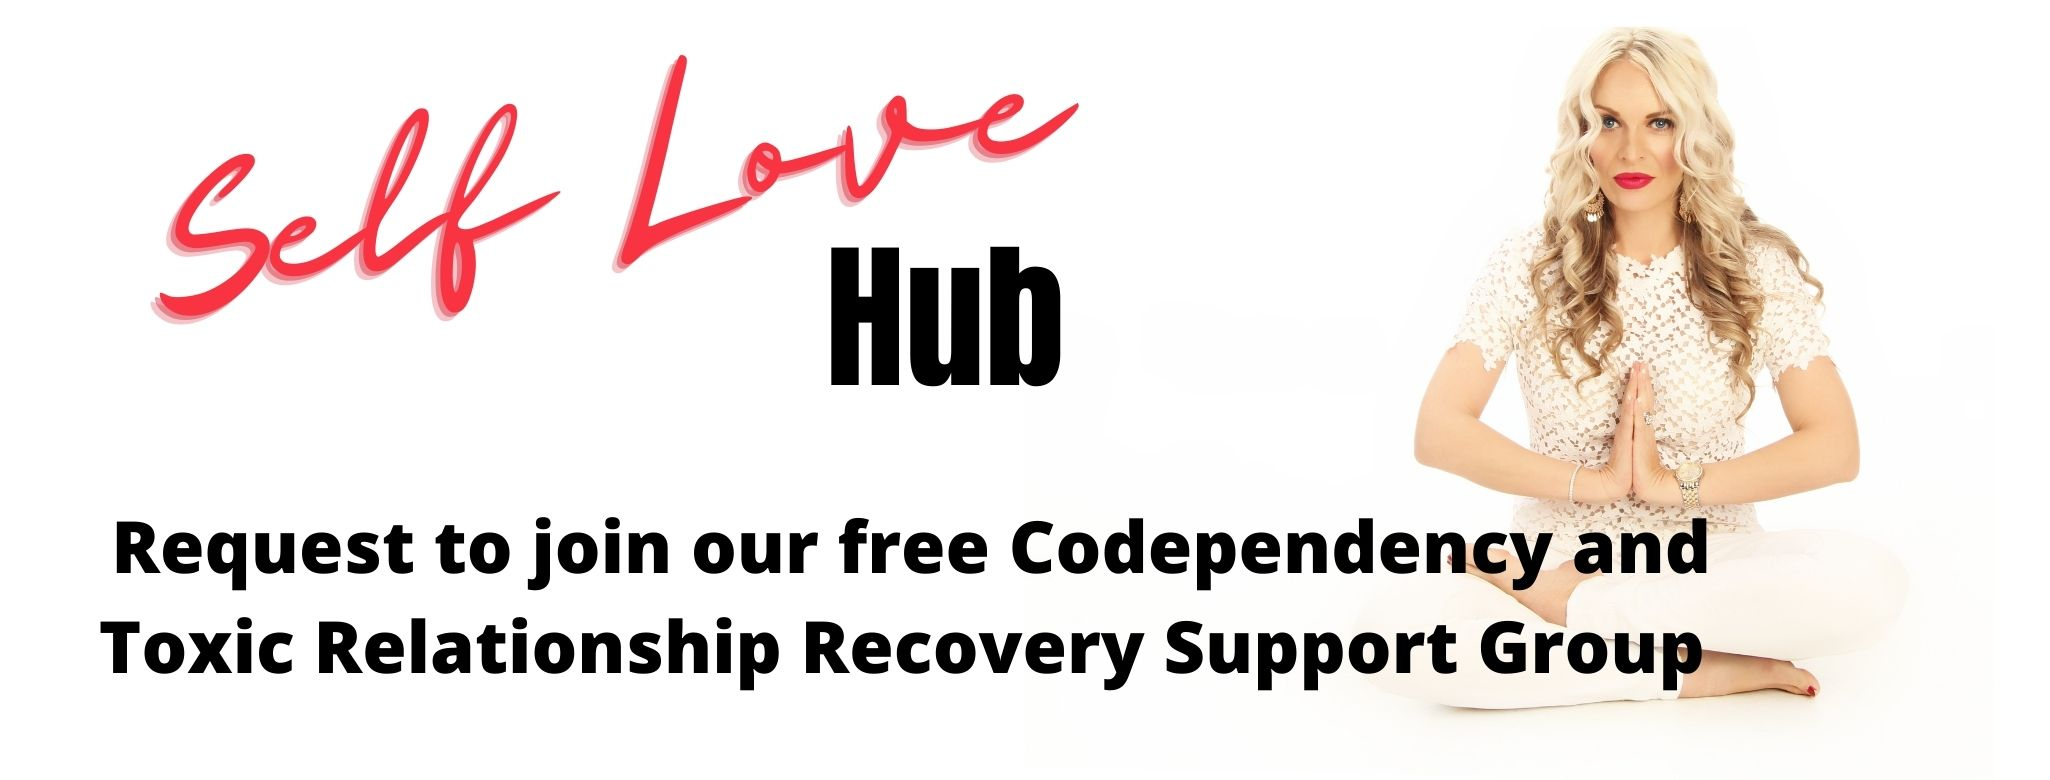 codependency support group